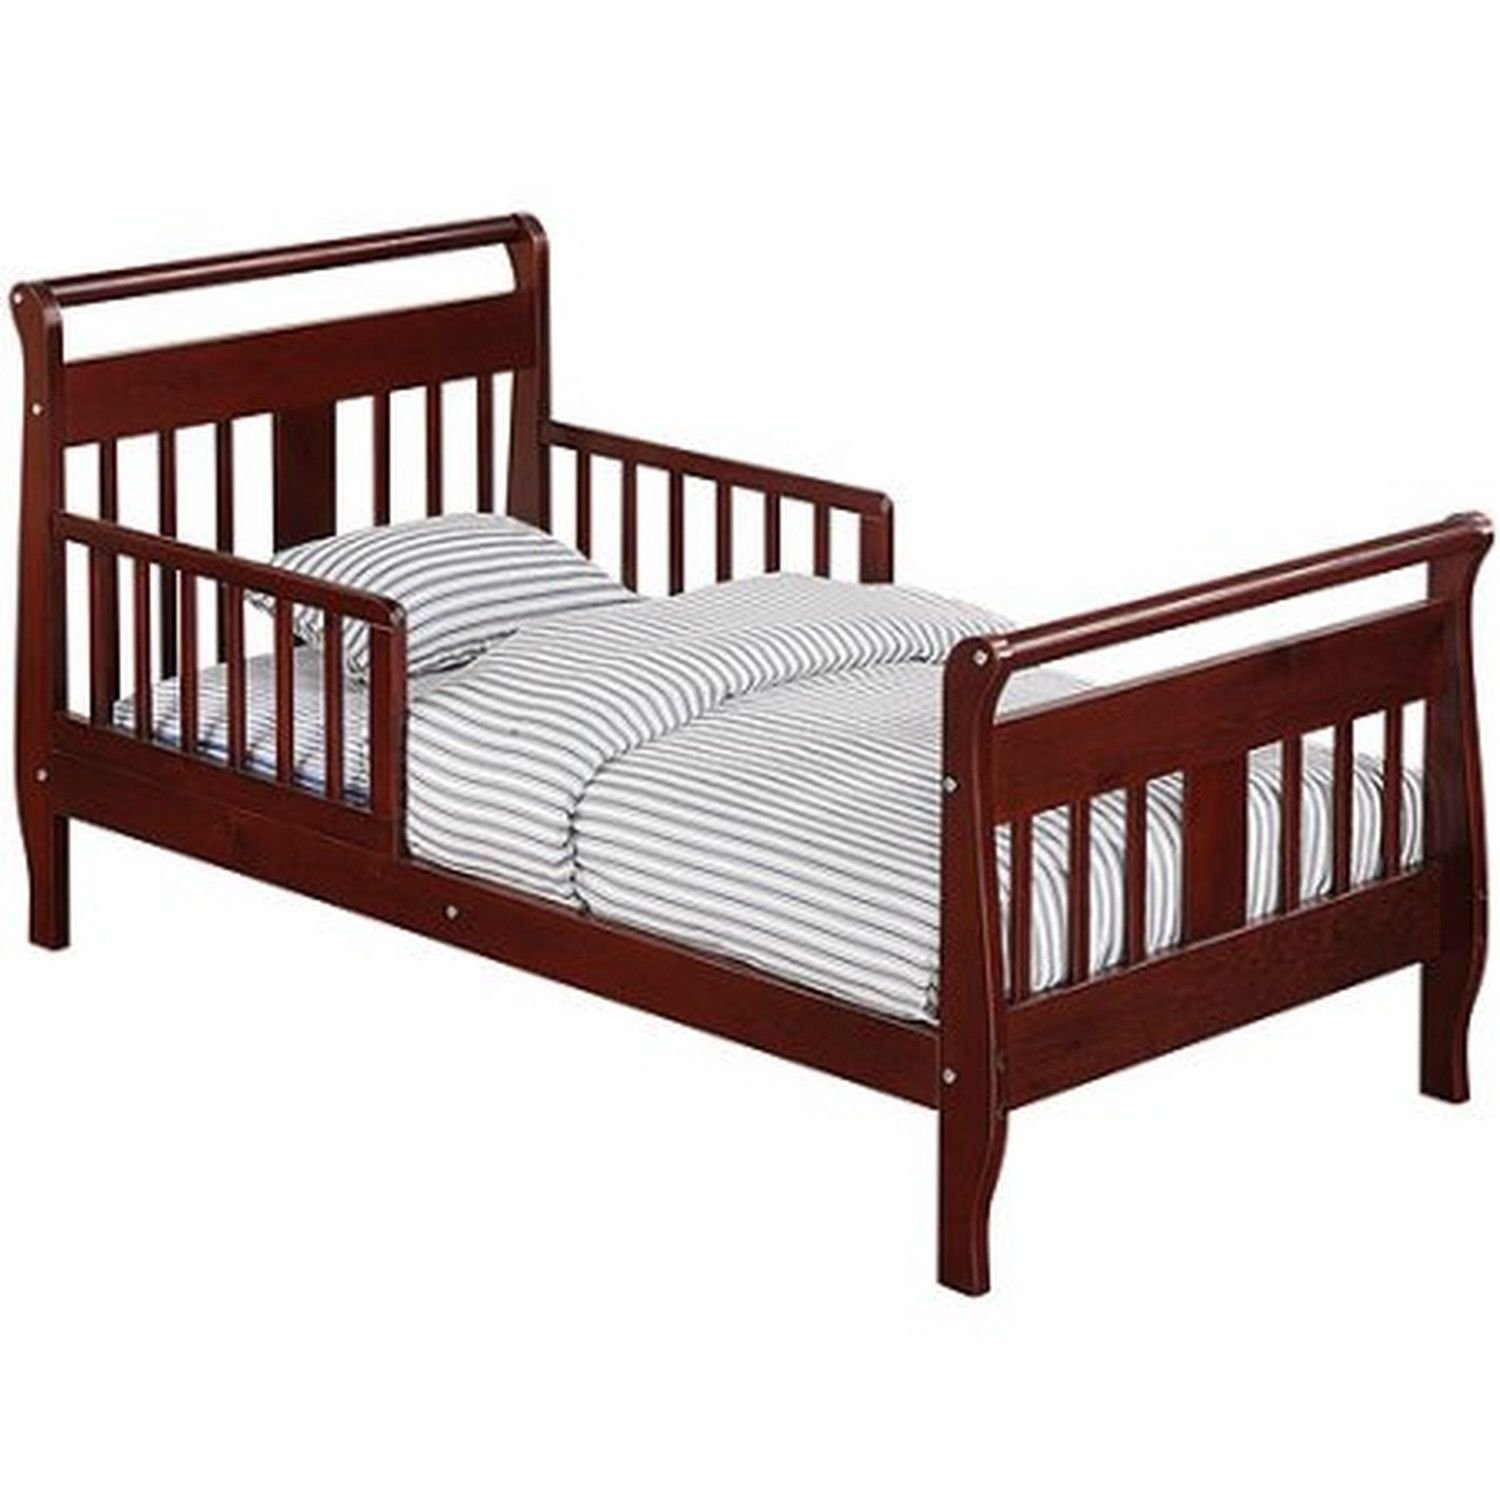 Baby Relax Sleigh Toddler Bed Cherry